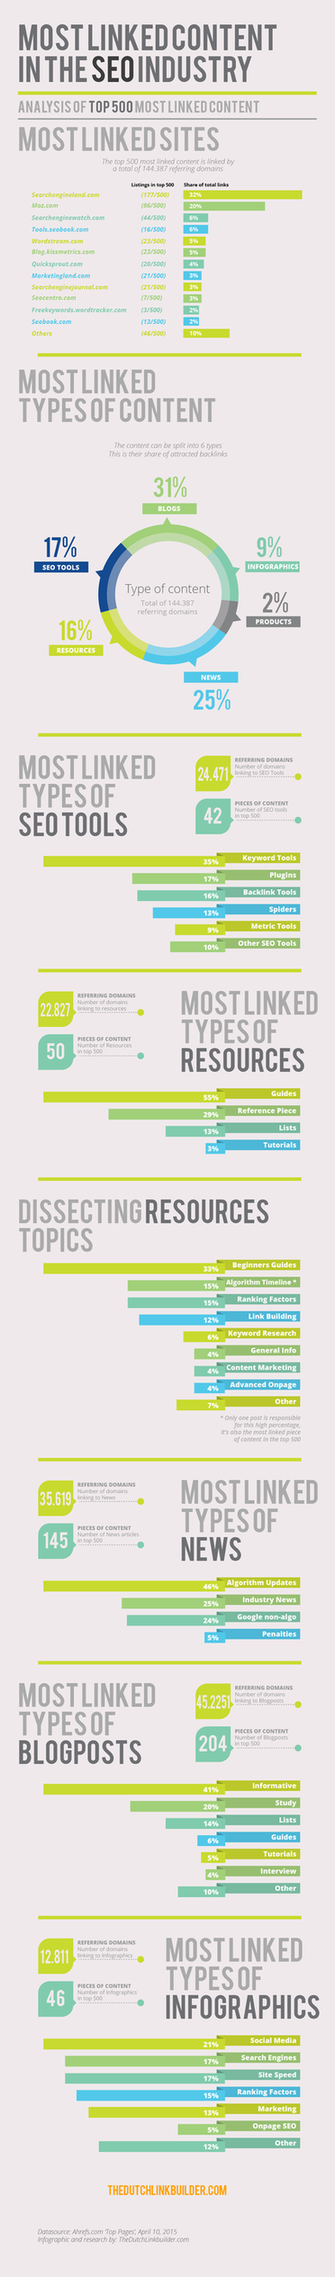 Most links SEO content infographic